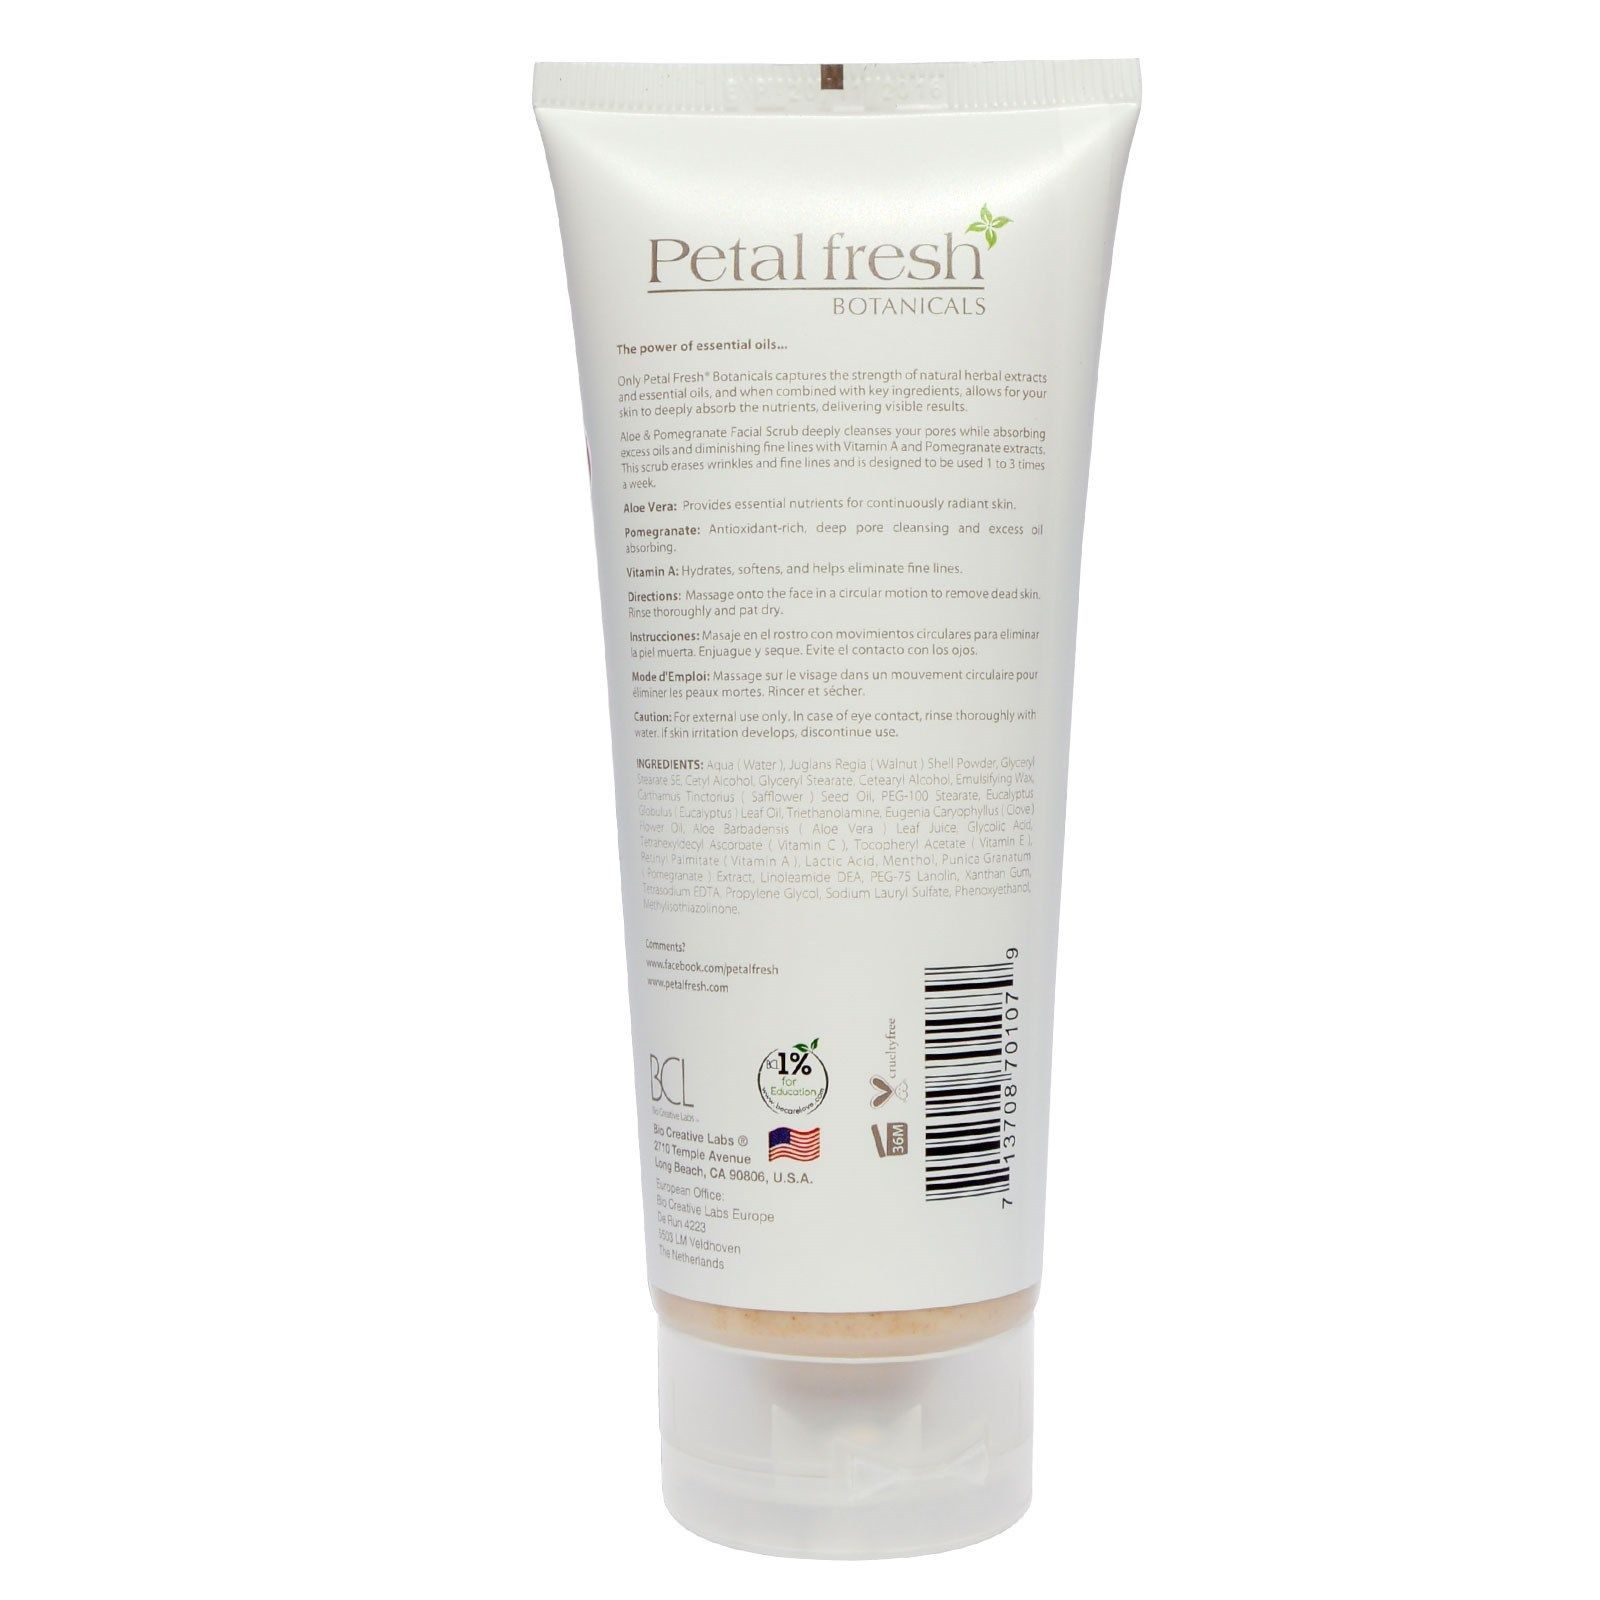 NEW Petal Fresh Botanicals - Age Defying FACIAL SCRUB - ALOE & POMEGRANATE - 7oz